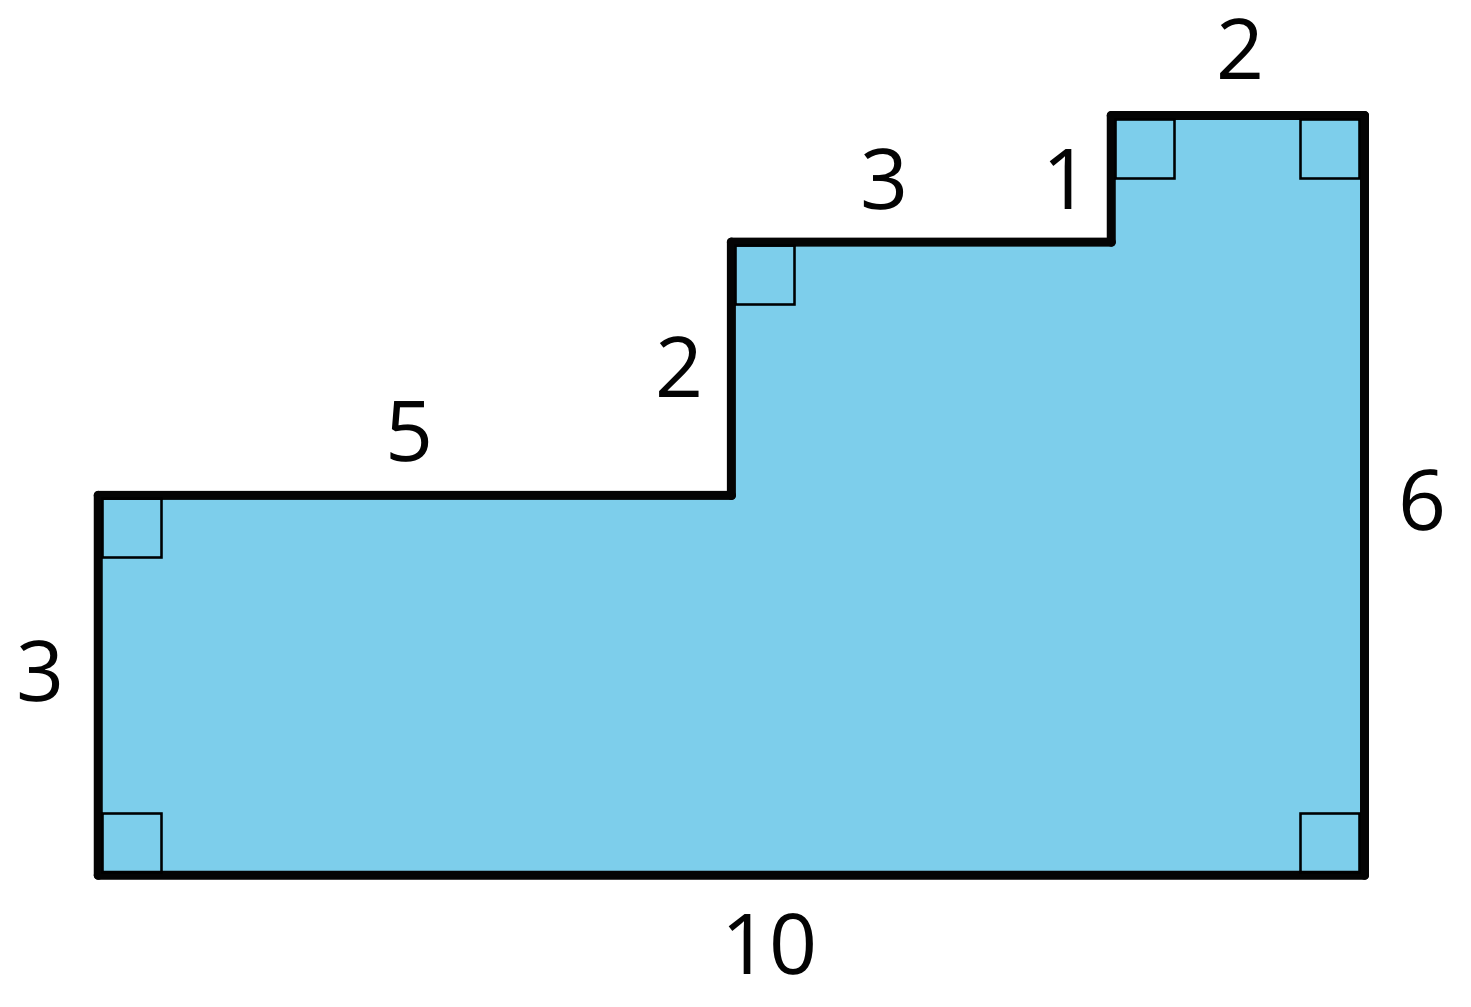 A figure with a bottom of 10 units, a right side of six units, and a left side that rises 3 units, then goes across 5 units, then goes up another 2 units, then across another 3 units, then up another 1 unit, and across another 2 units to connect to the right side. All angles are right angles.